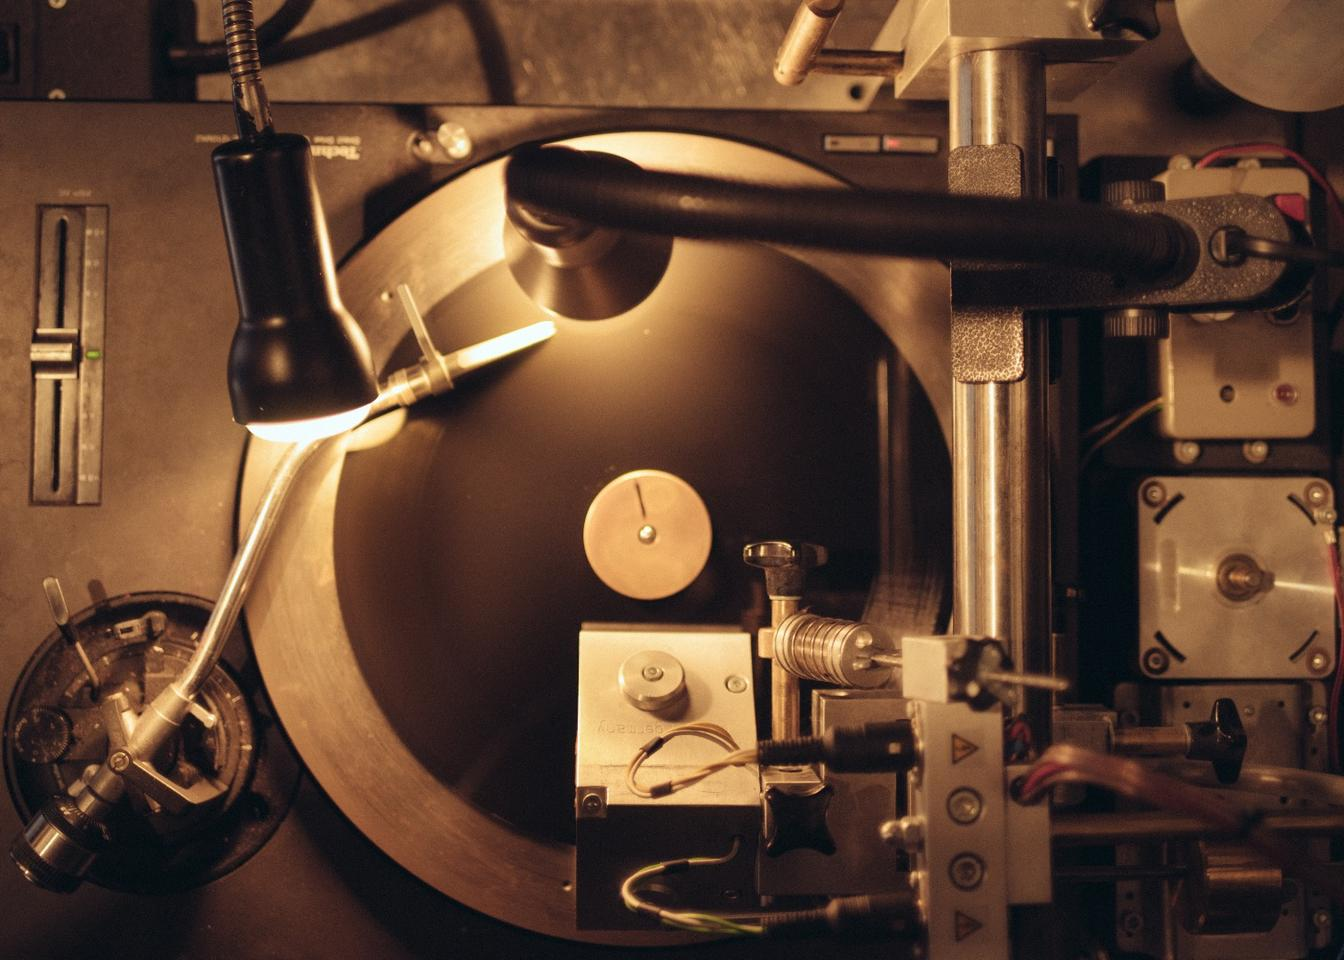 The Vinylify cutting machine getting its groove on